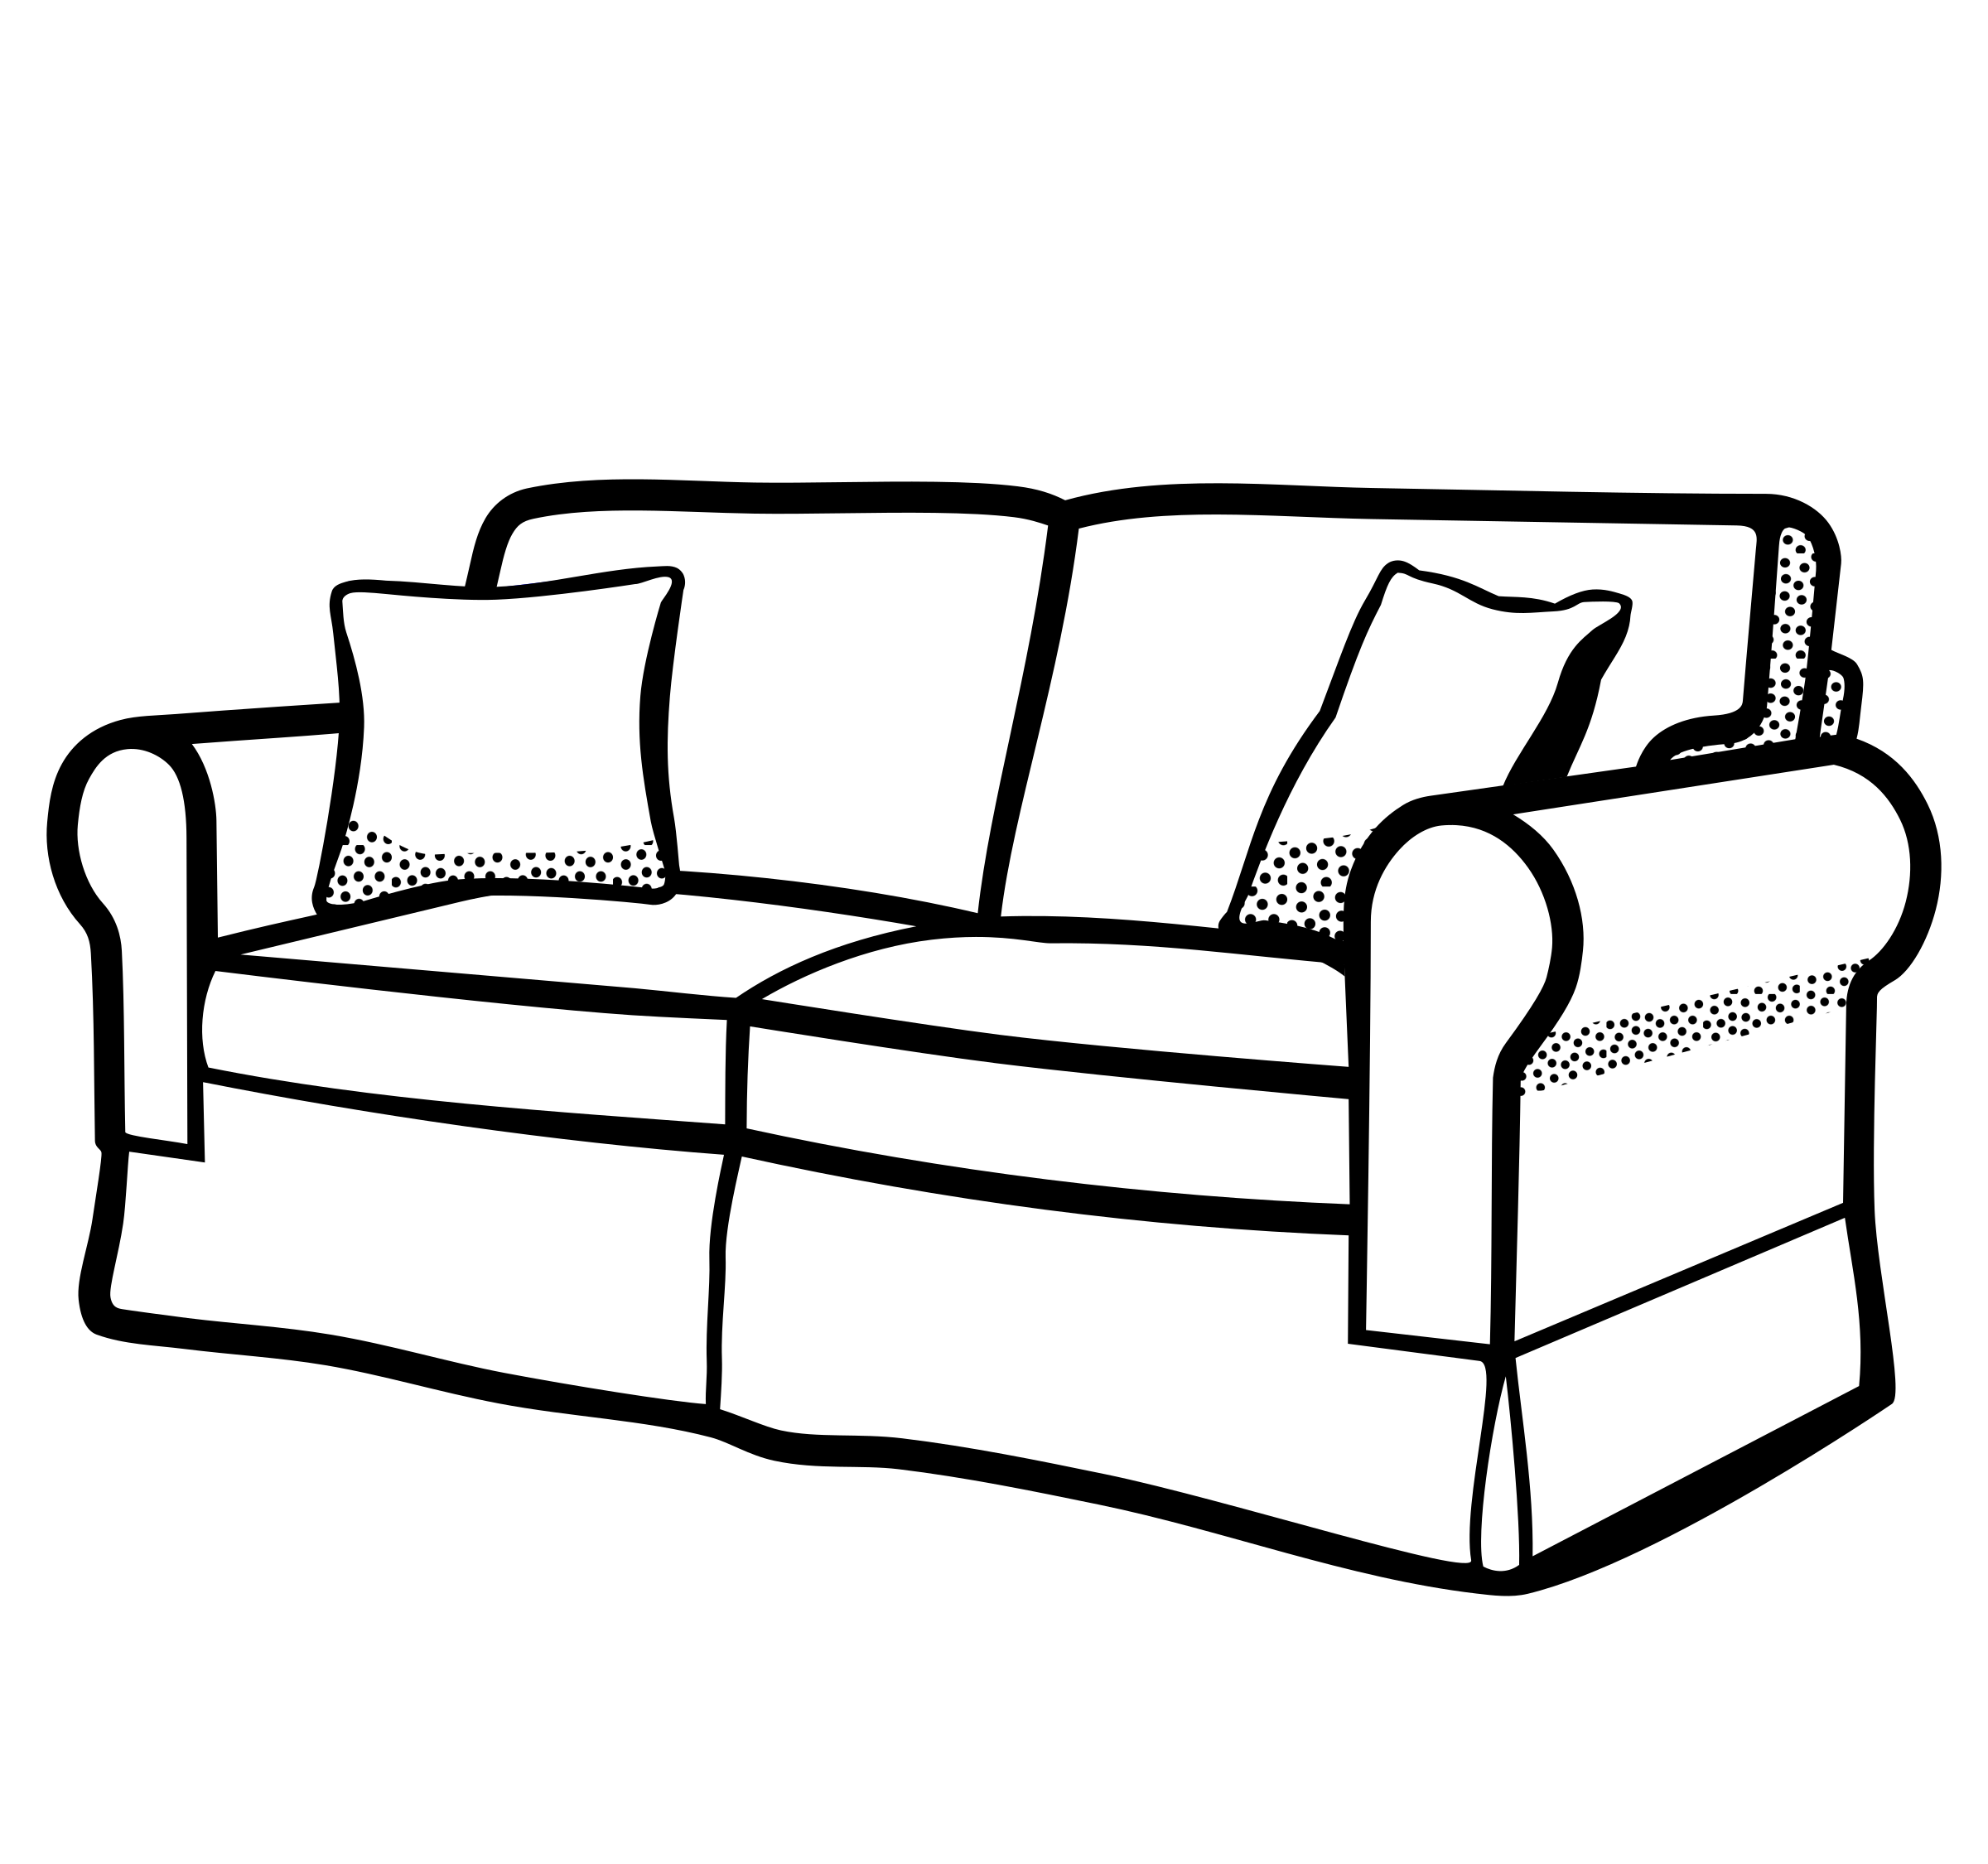 Sofa clipart And #clipart clip Downloadclipart Sofa